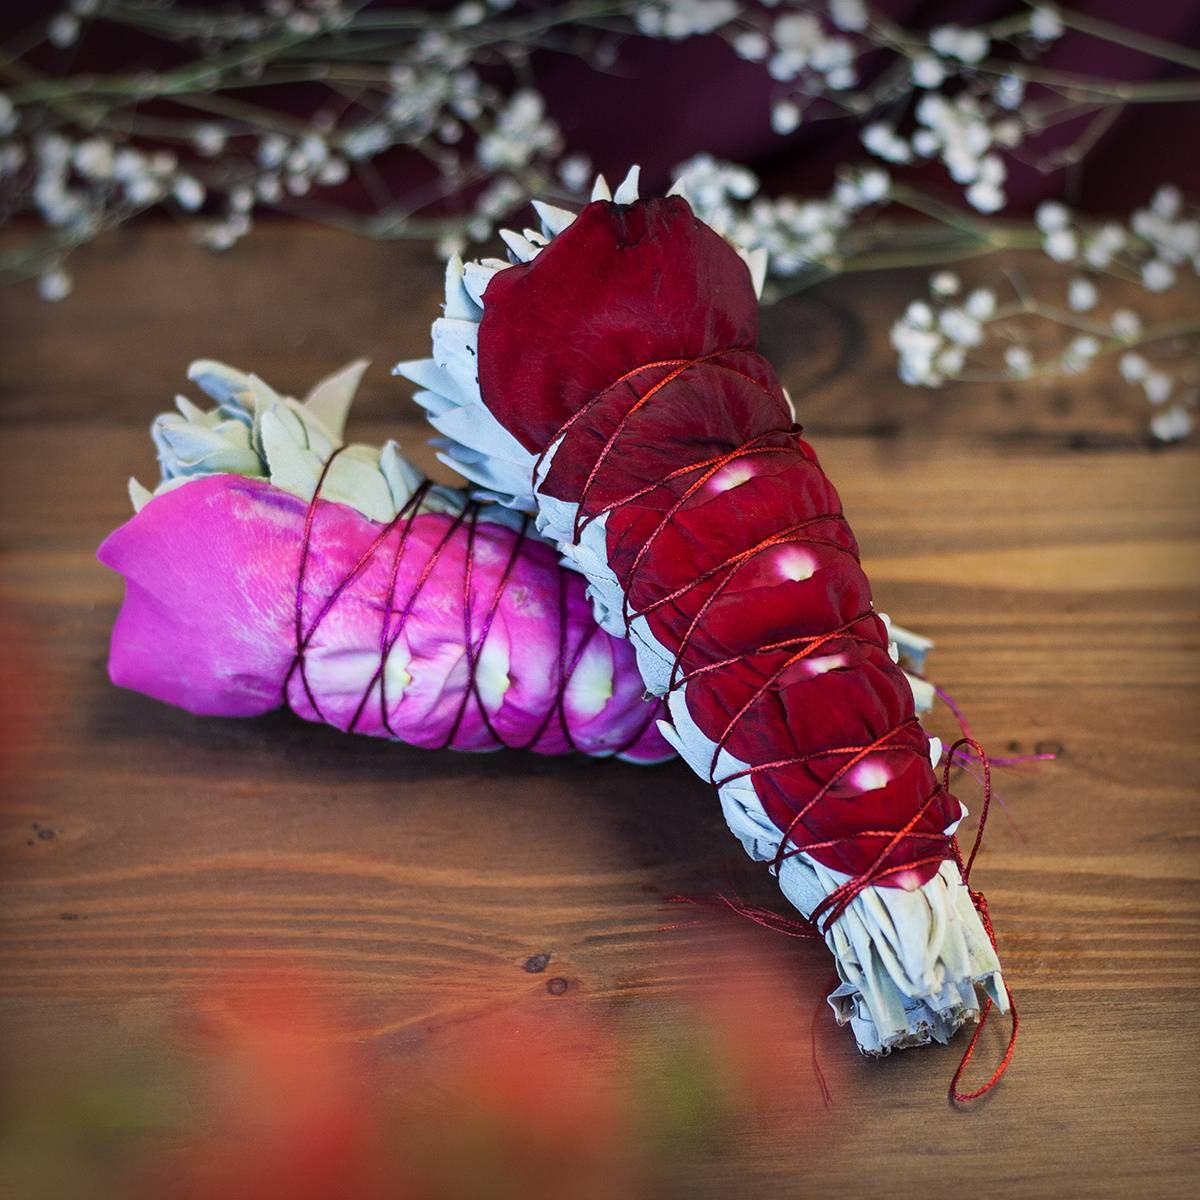 Rose Petal Smudge Bundles for purification, positivity, and calling in  Divine Love